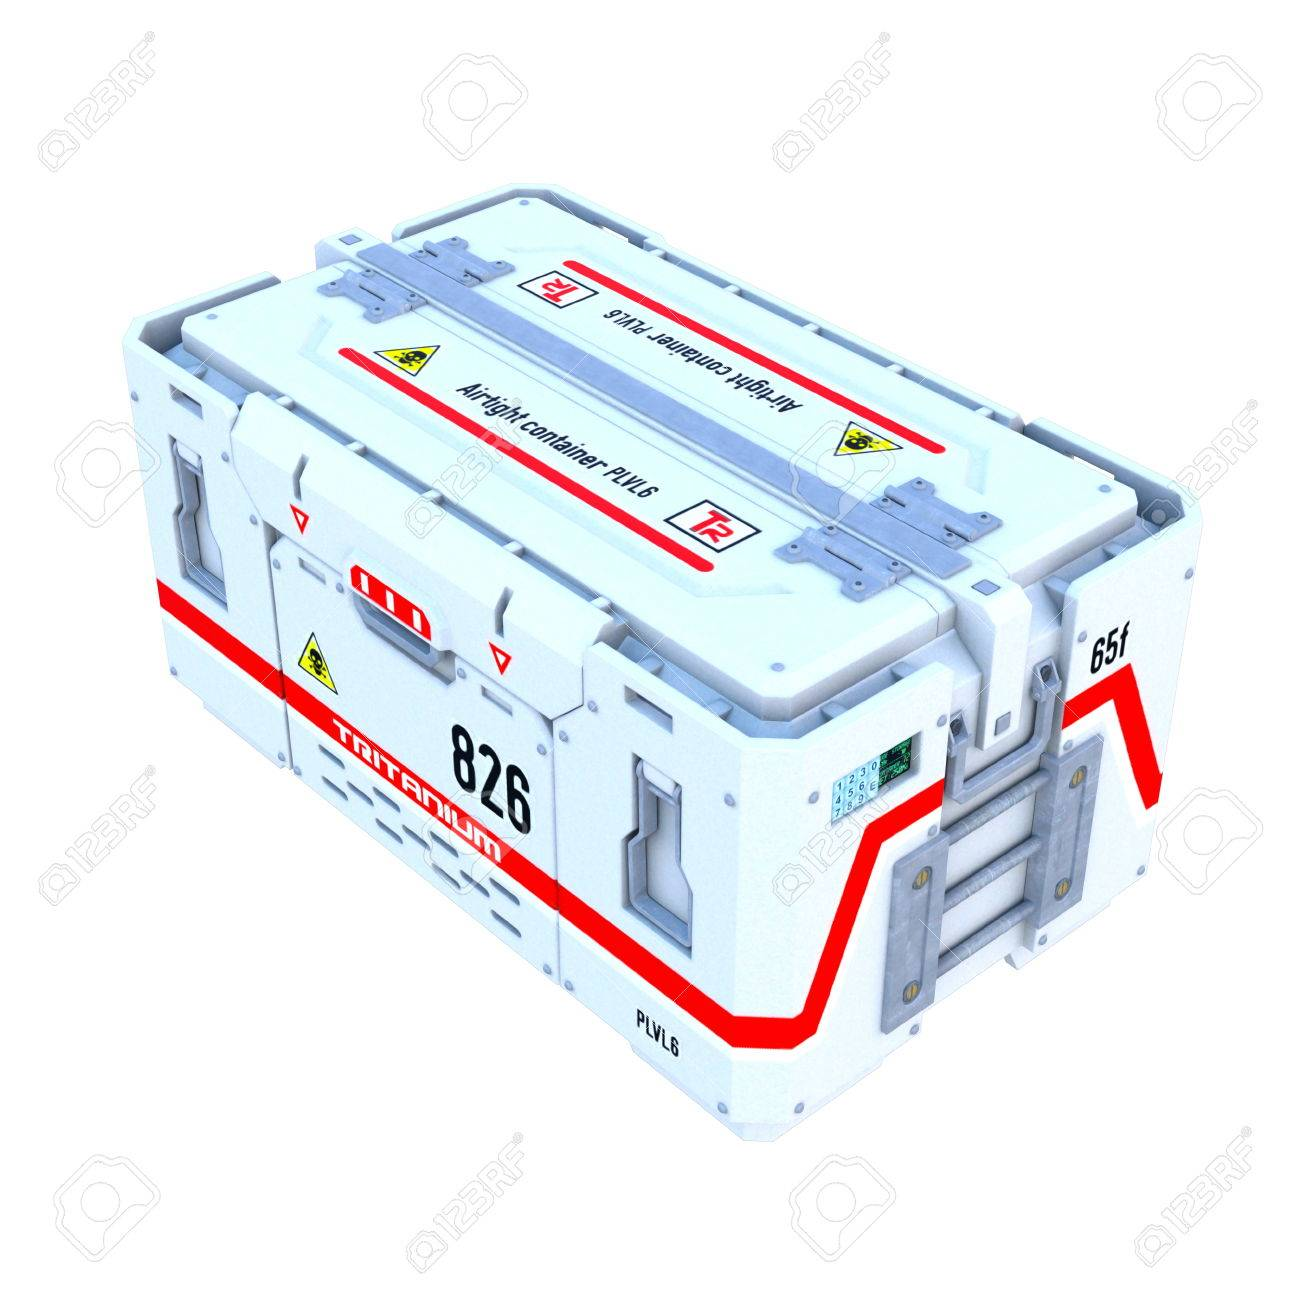 Luftdichte Box Stock Photo